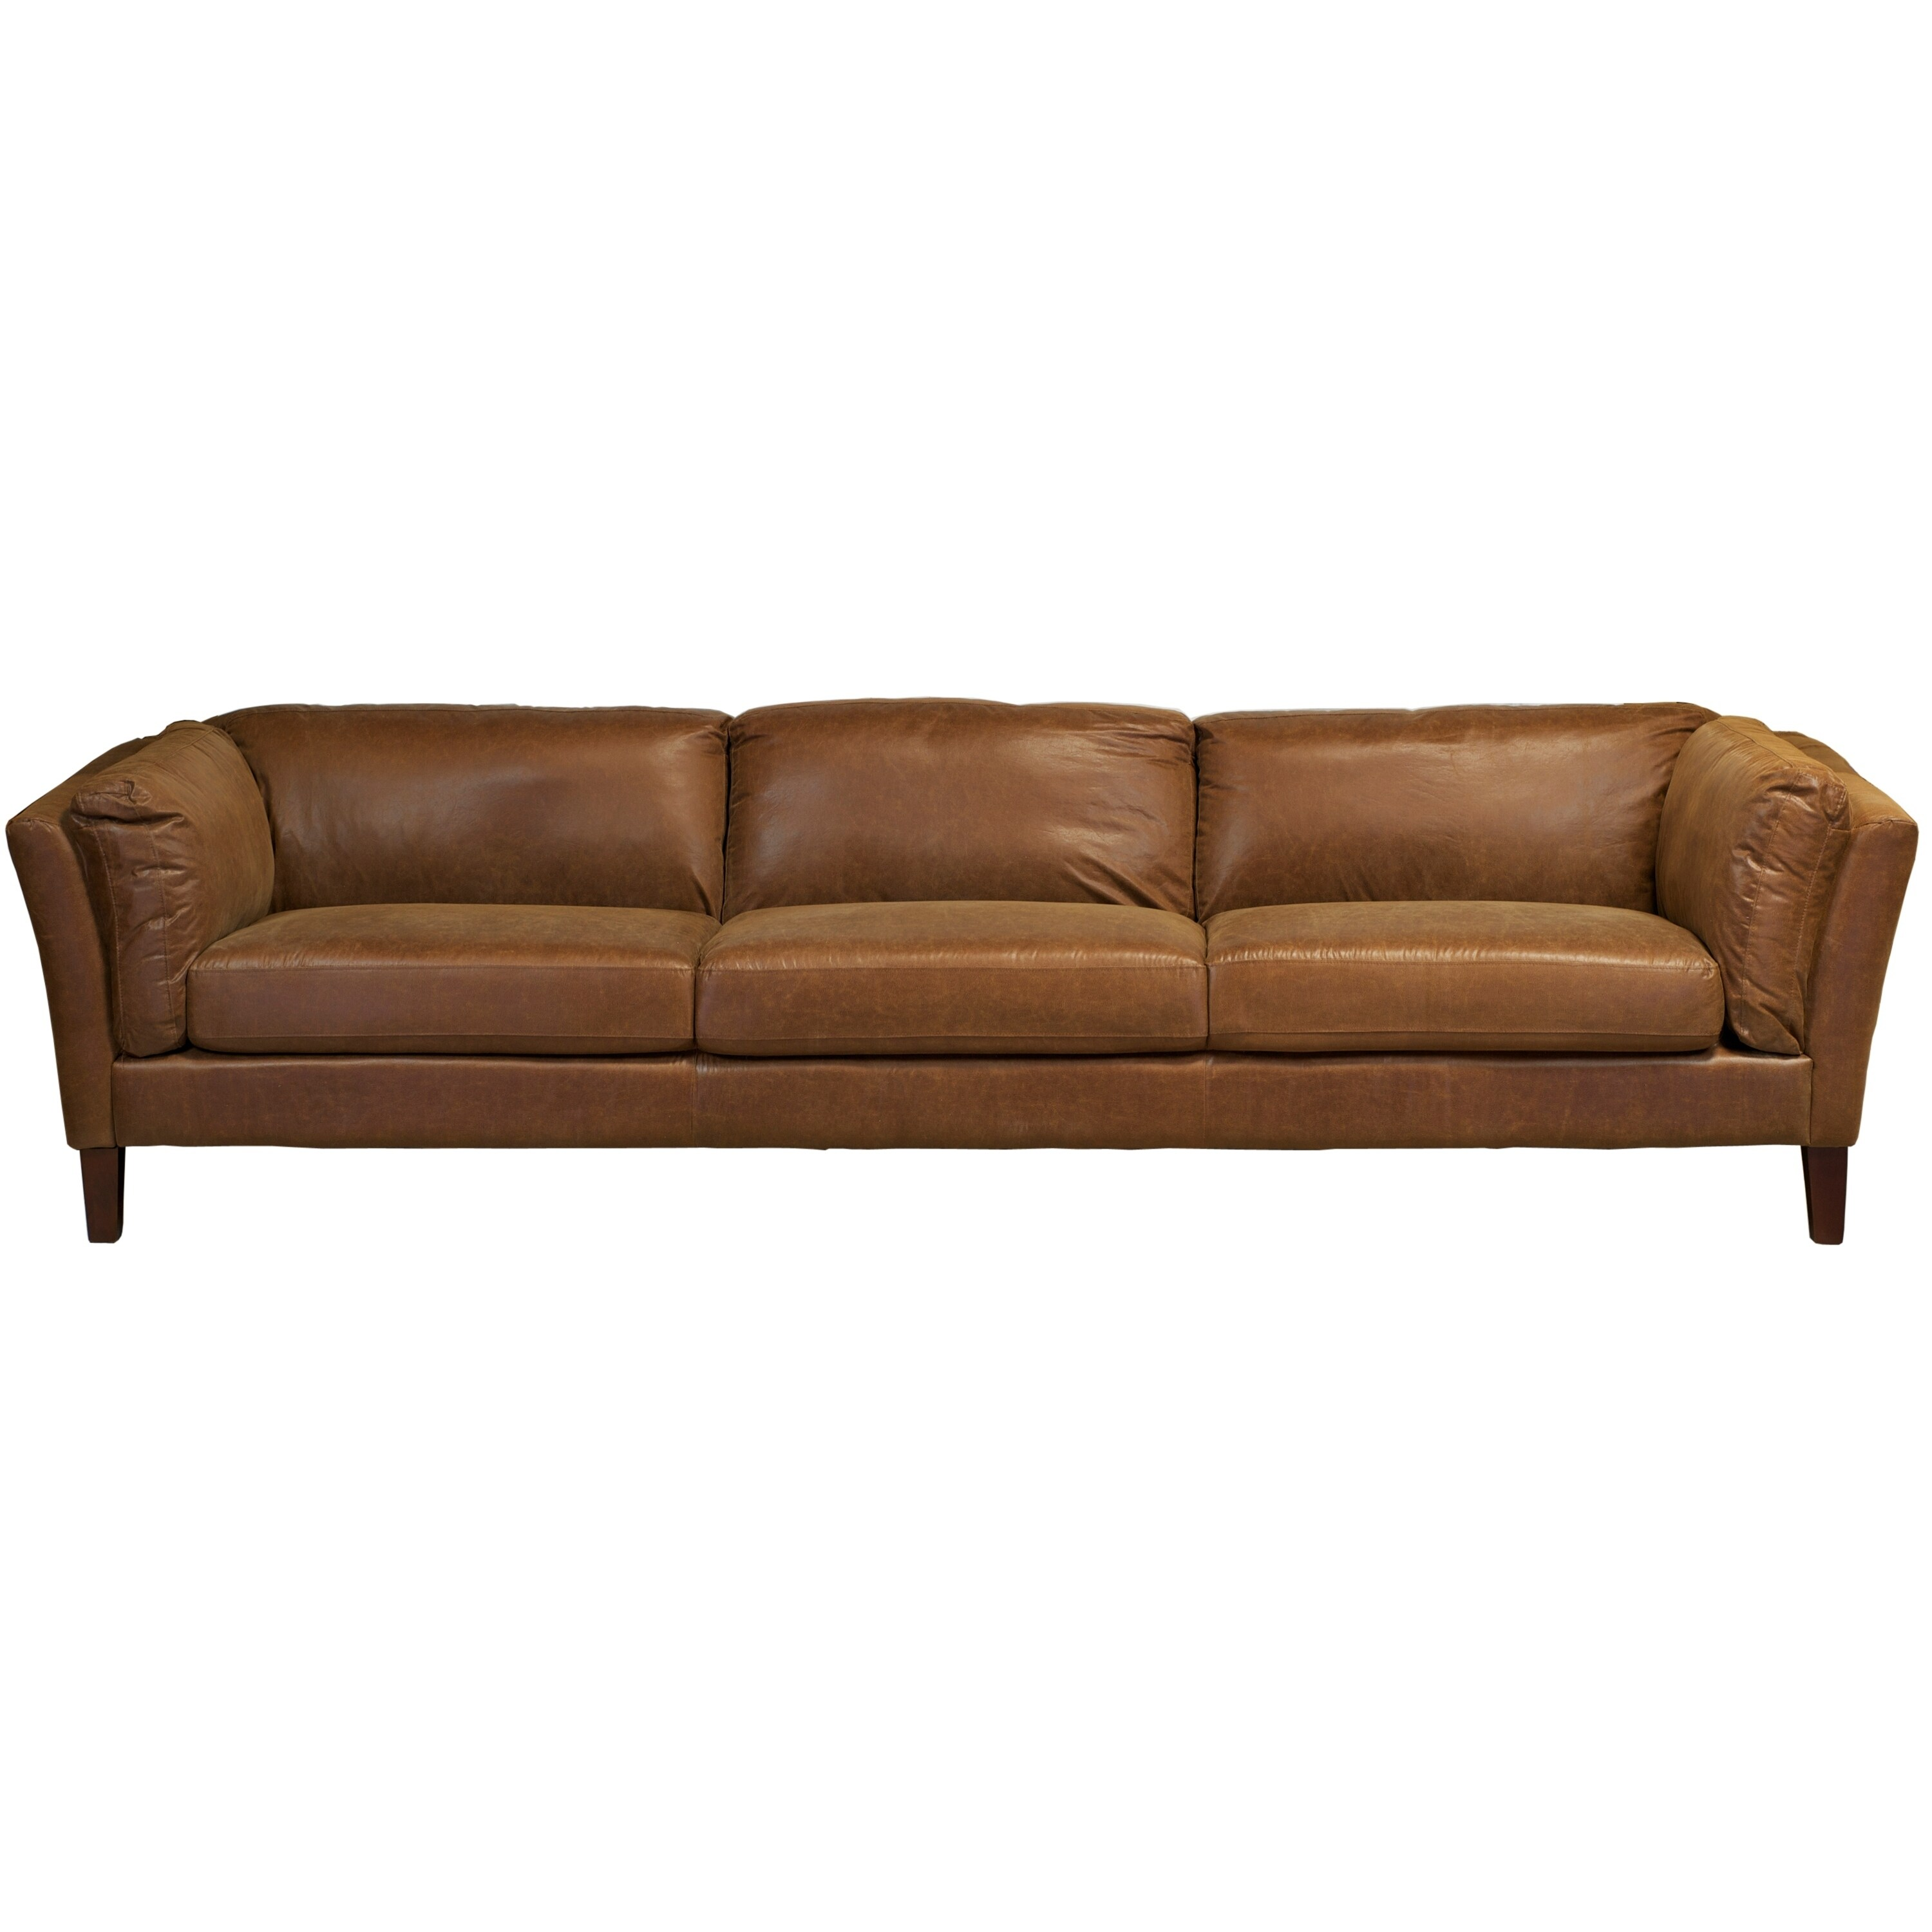 Sofa X Long Crusader 4 Seater Brown Sofa Long